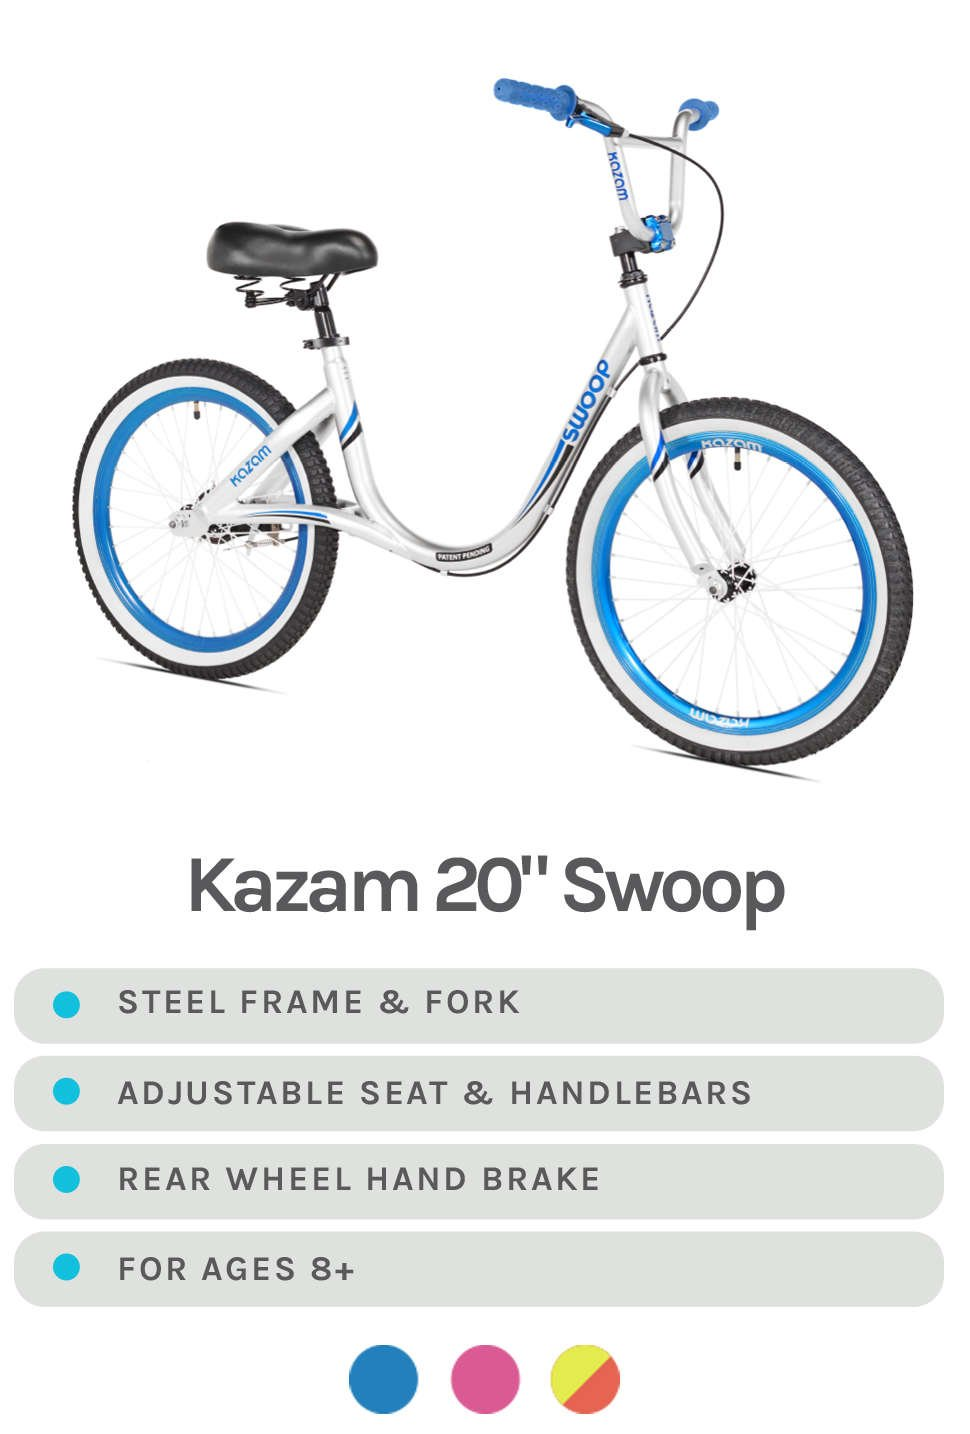 White & Blue Swoop Featured - Specs - Steel Frame & Fork, Adjustable Seat & Handlebars, Rear Wheel Hand Brake, For Ages 8+ - Available in White & Blue, White & Pink, or Yellow and Orange